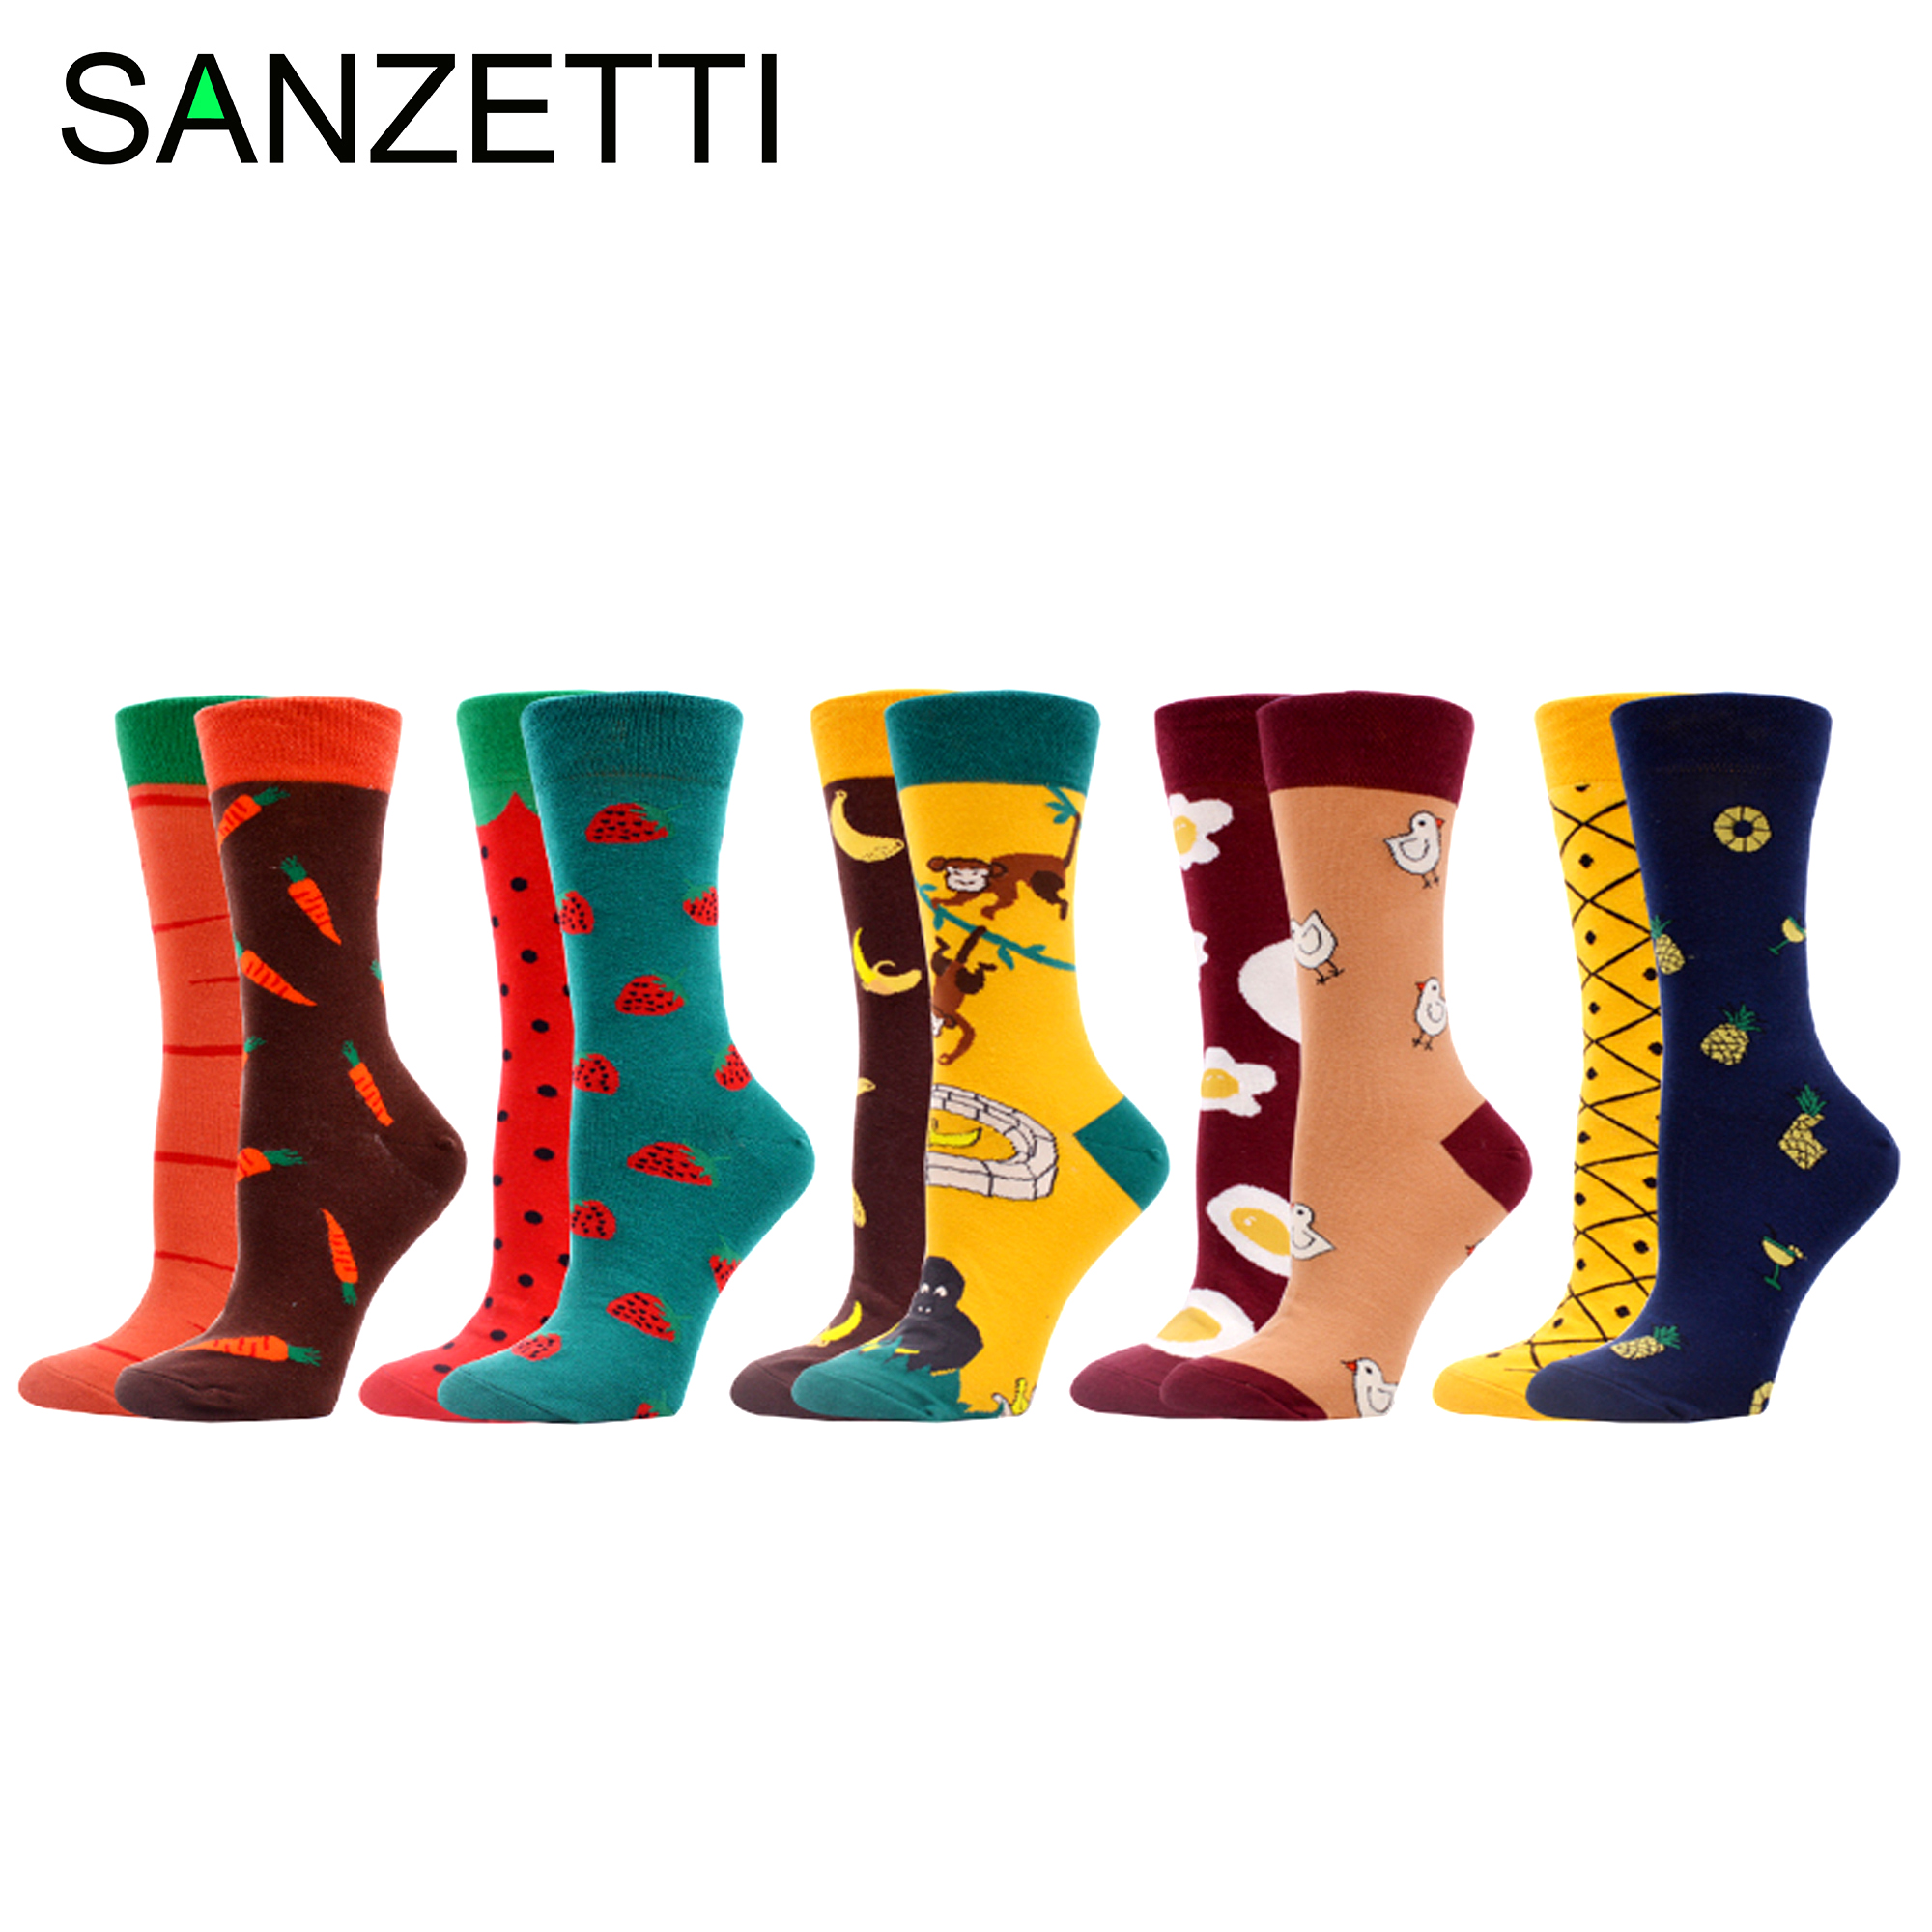 SANZETTI 5 Pairs Women's Crew Socks Happy Creative Shuangpin Design Colorful Harajuku Bright Pattern Novelty Wedding Dress Socks